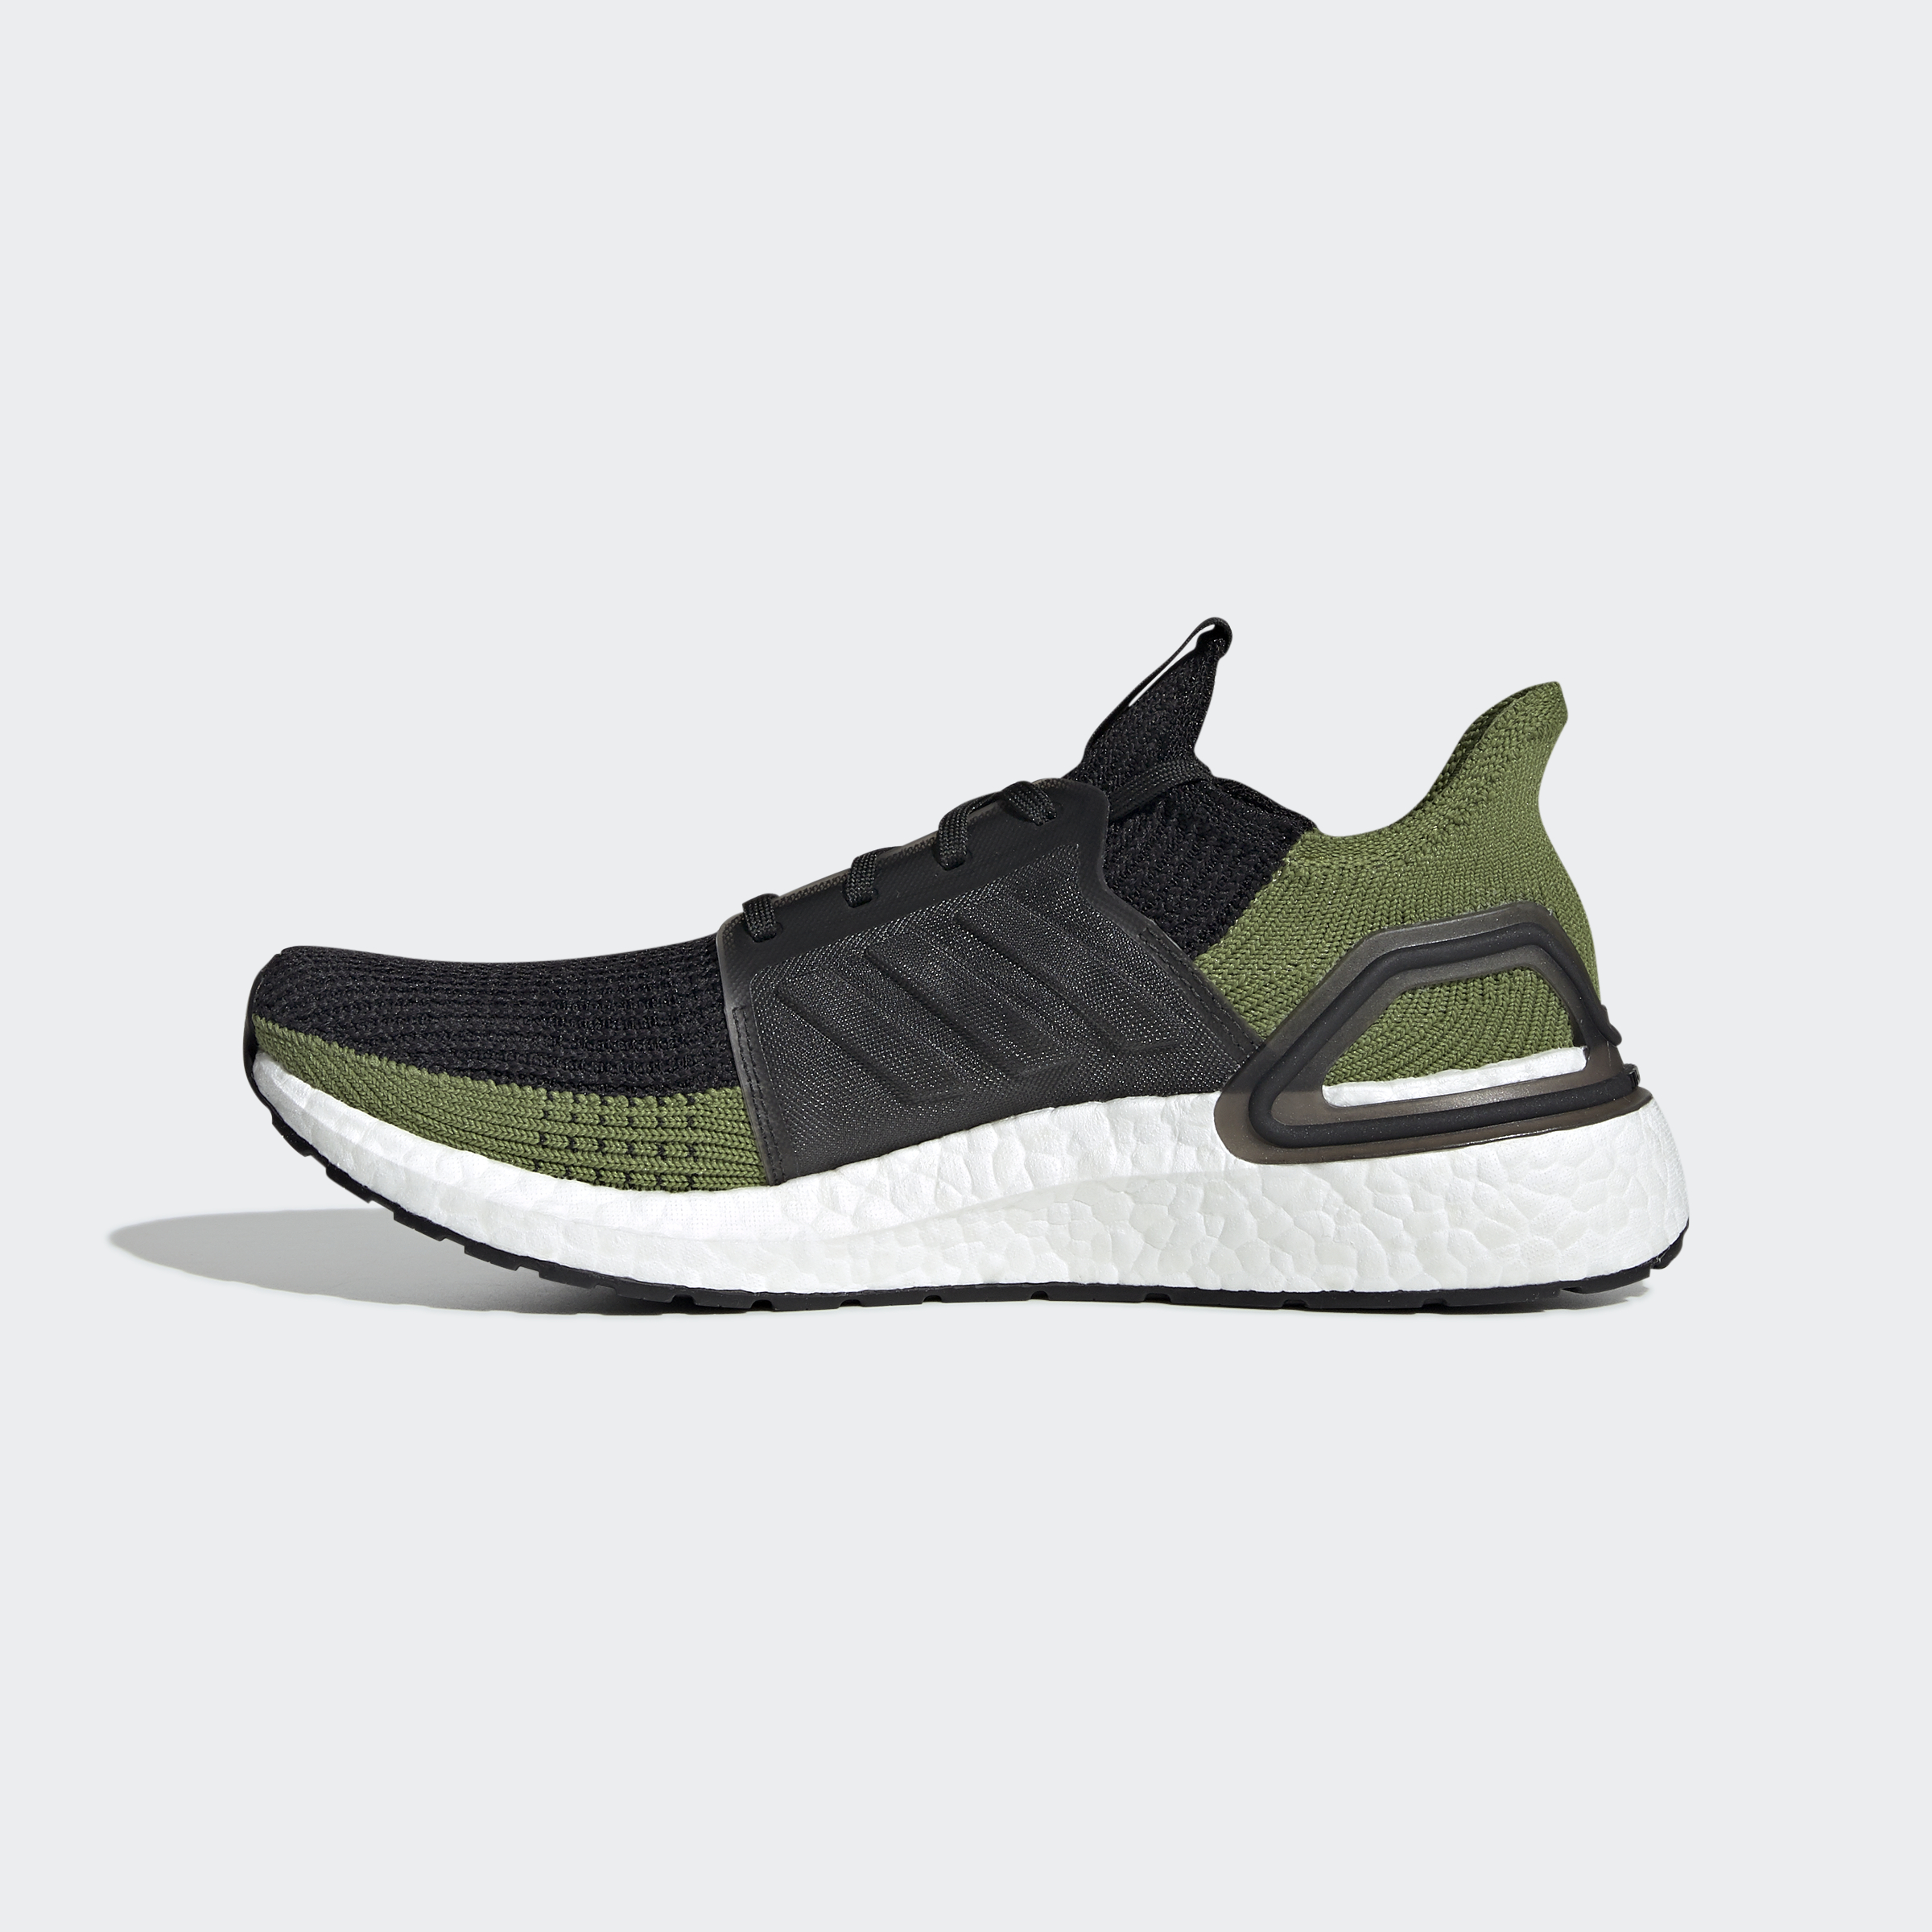 adidas-Ultraboost-19-Shoes-Athletic-amp-Sneakers thumbnail 102